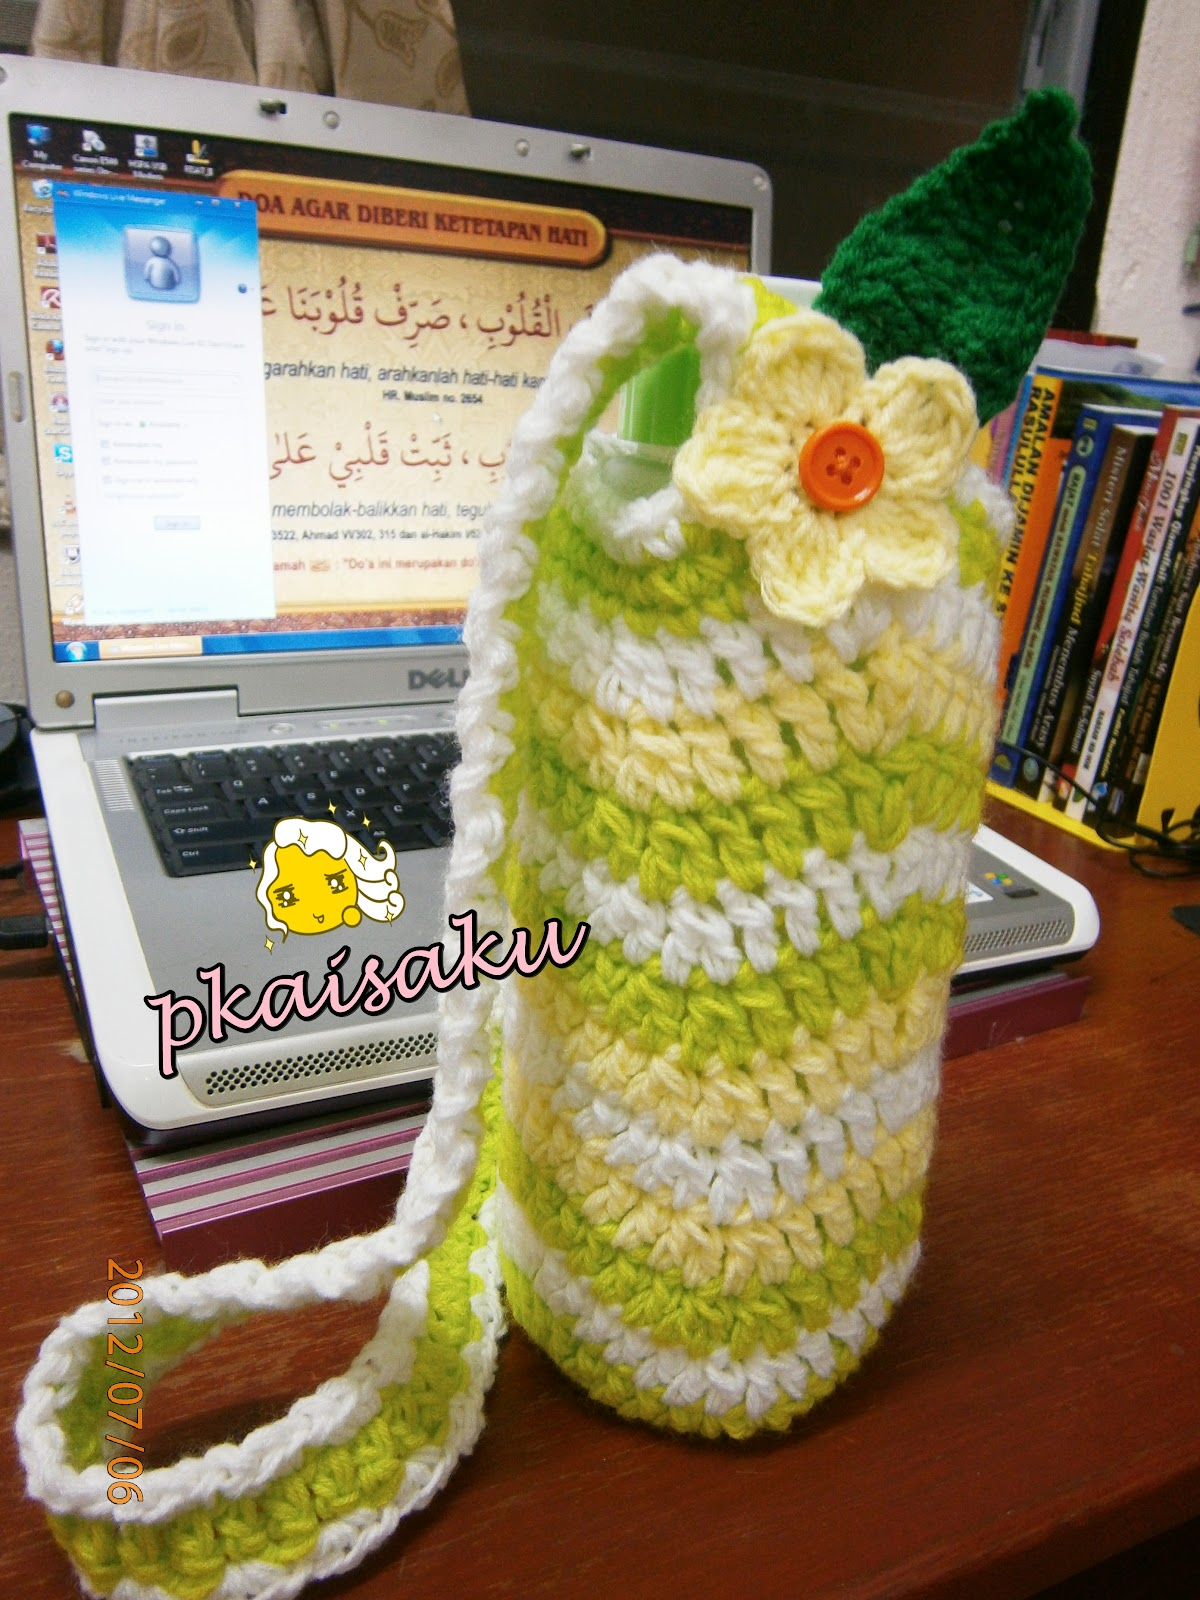 Loveyarns neat ripple water bottle carrier to make it more interesting u can crochet flower and leafen sew it on ur water bottle carriereasy ritebdw its up to u olls how to decorate ur bankloansurffo Choice Image